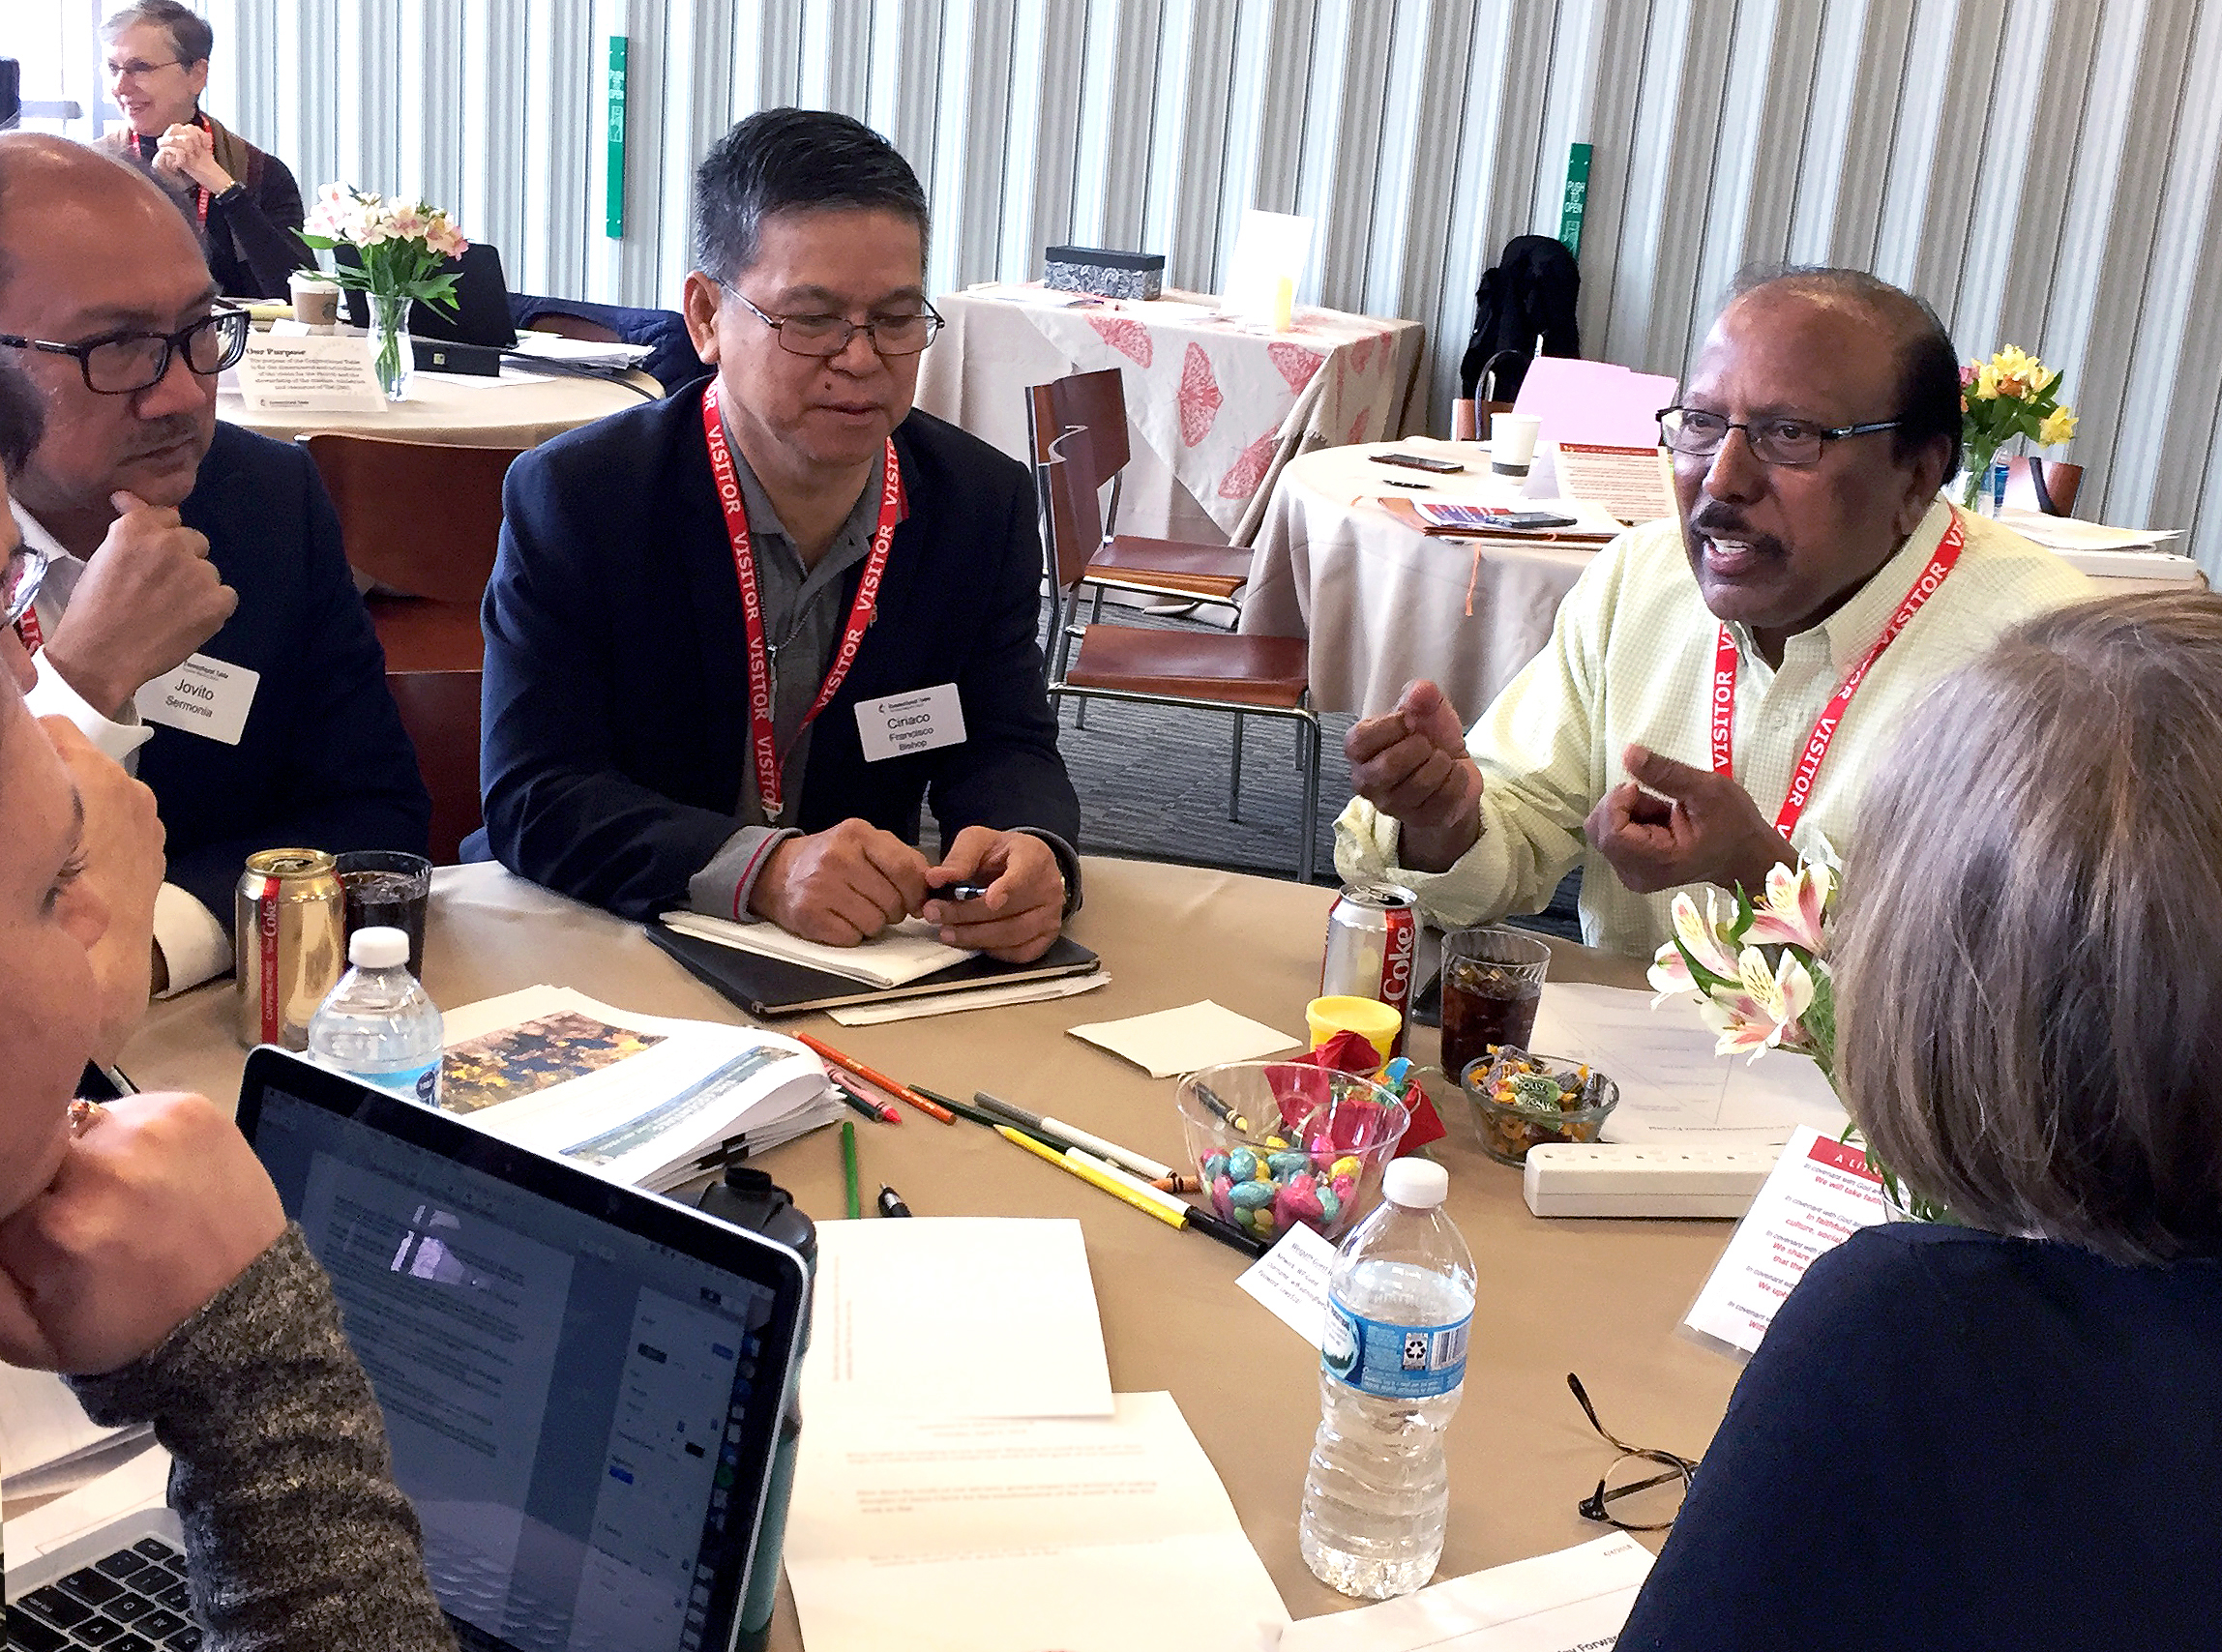 Members of The Connectional Table talk in a small group after a presentation on the Way Forward Commission. From left facing the table are members Jovito Sermonia of the Philippines, Bishop Ciriaco Francisco of the Philippines and the Rev. Jacob Dharmaraj of New York. Photo by Heather Hahn, United Methodist News Service.